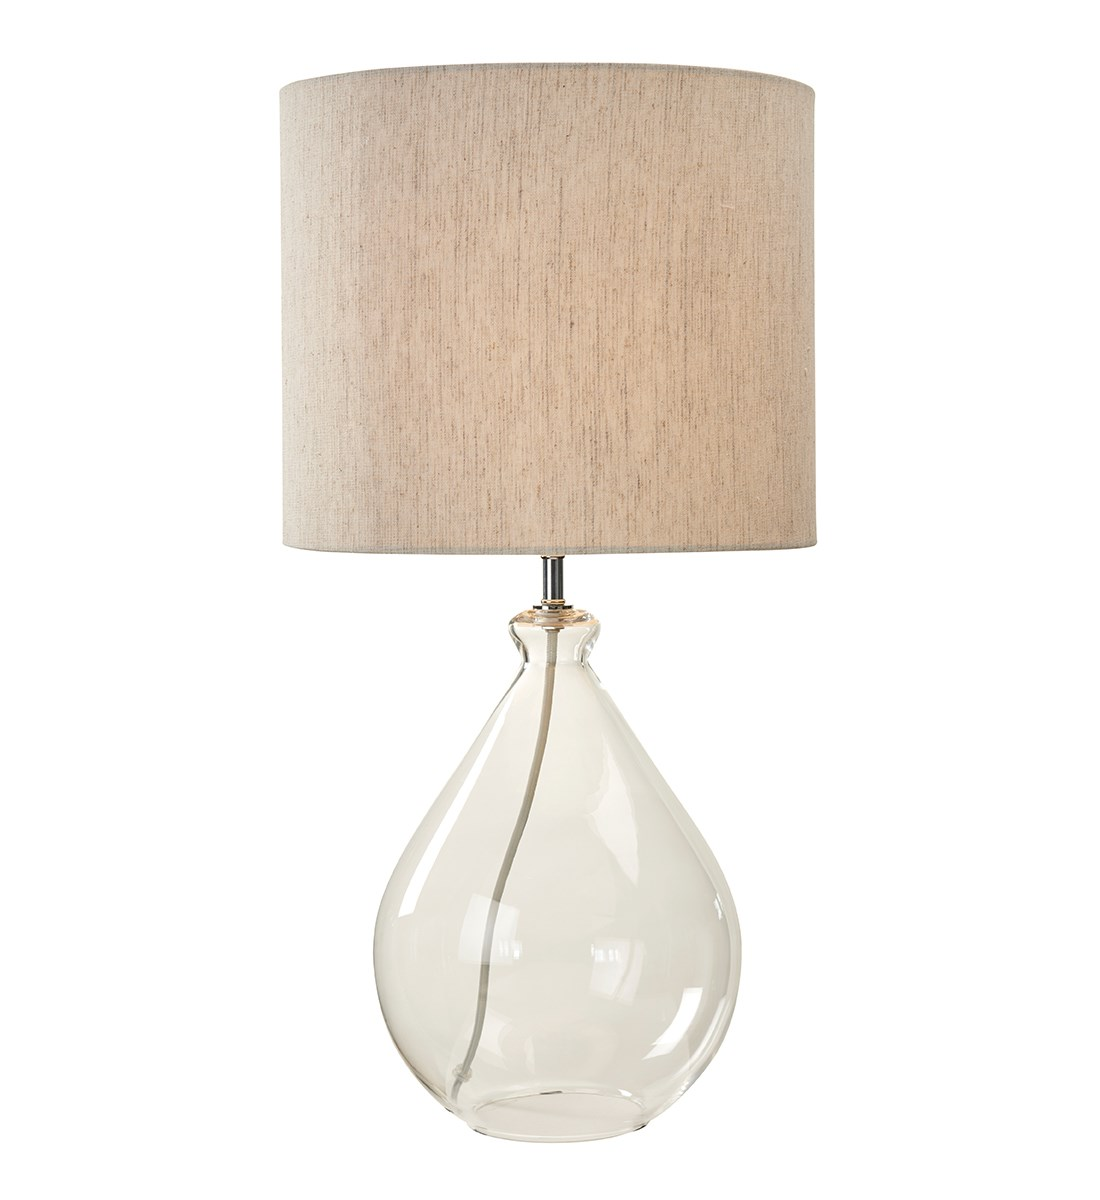 Nelis Table Lamp Glass Tear Drop Table Lamp